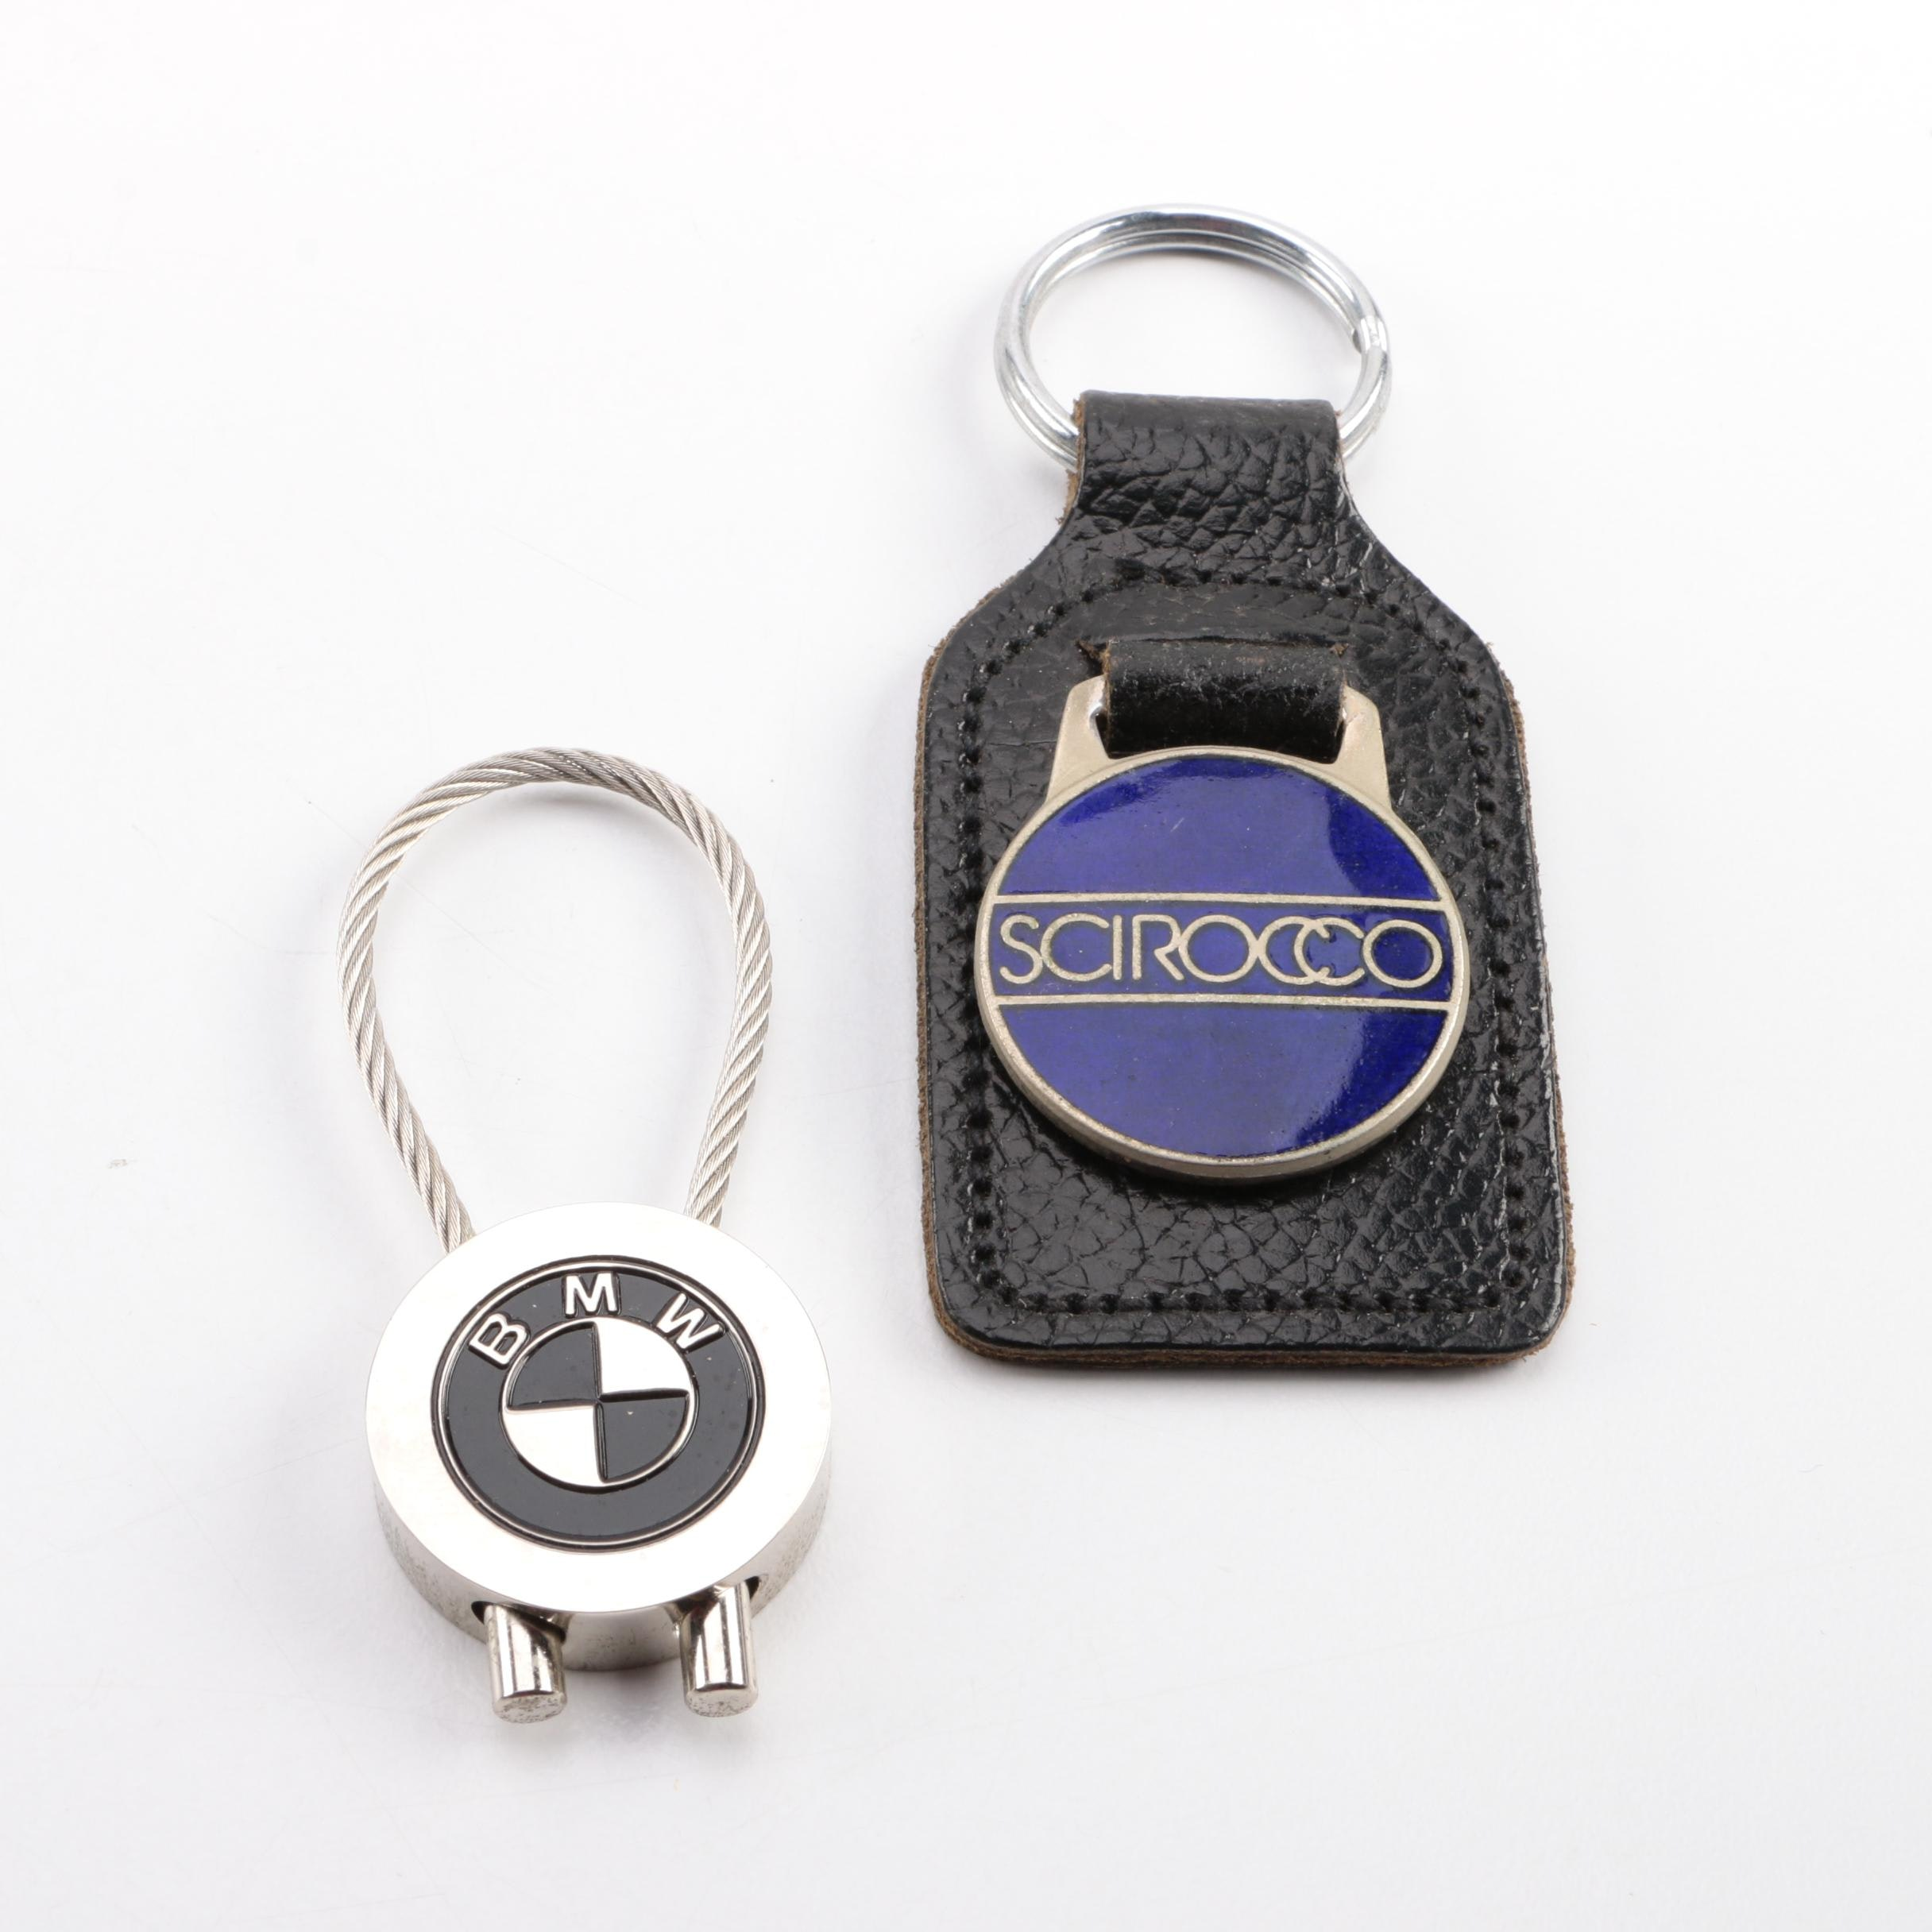 Scirocco and BMW Key Rings